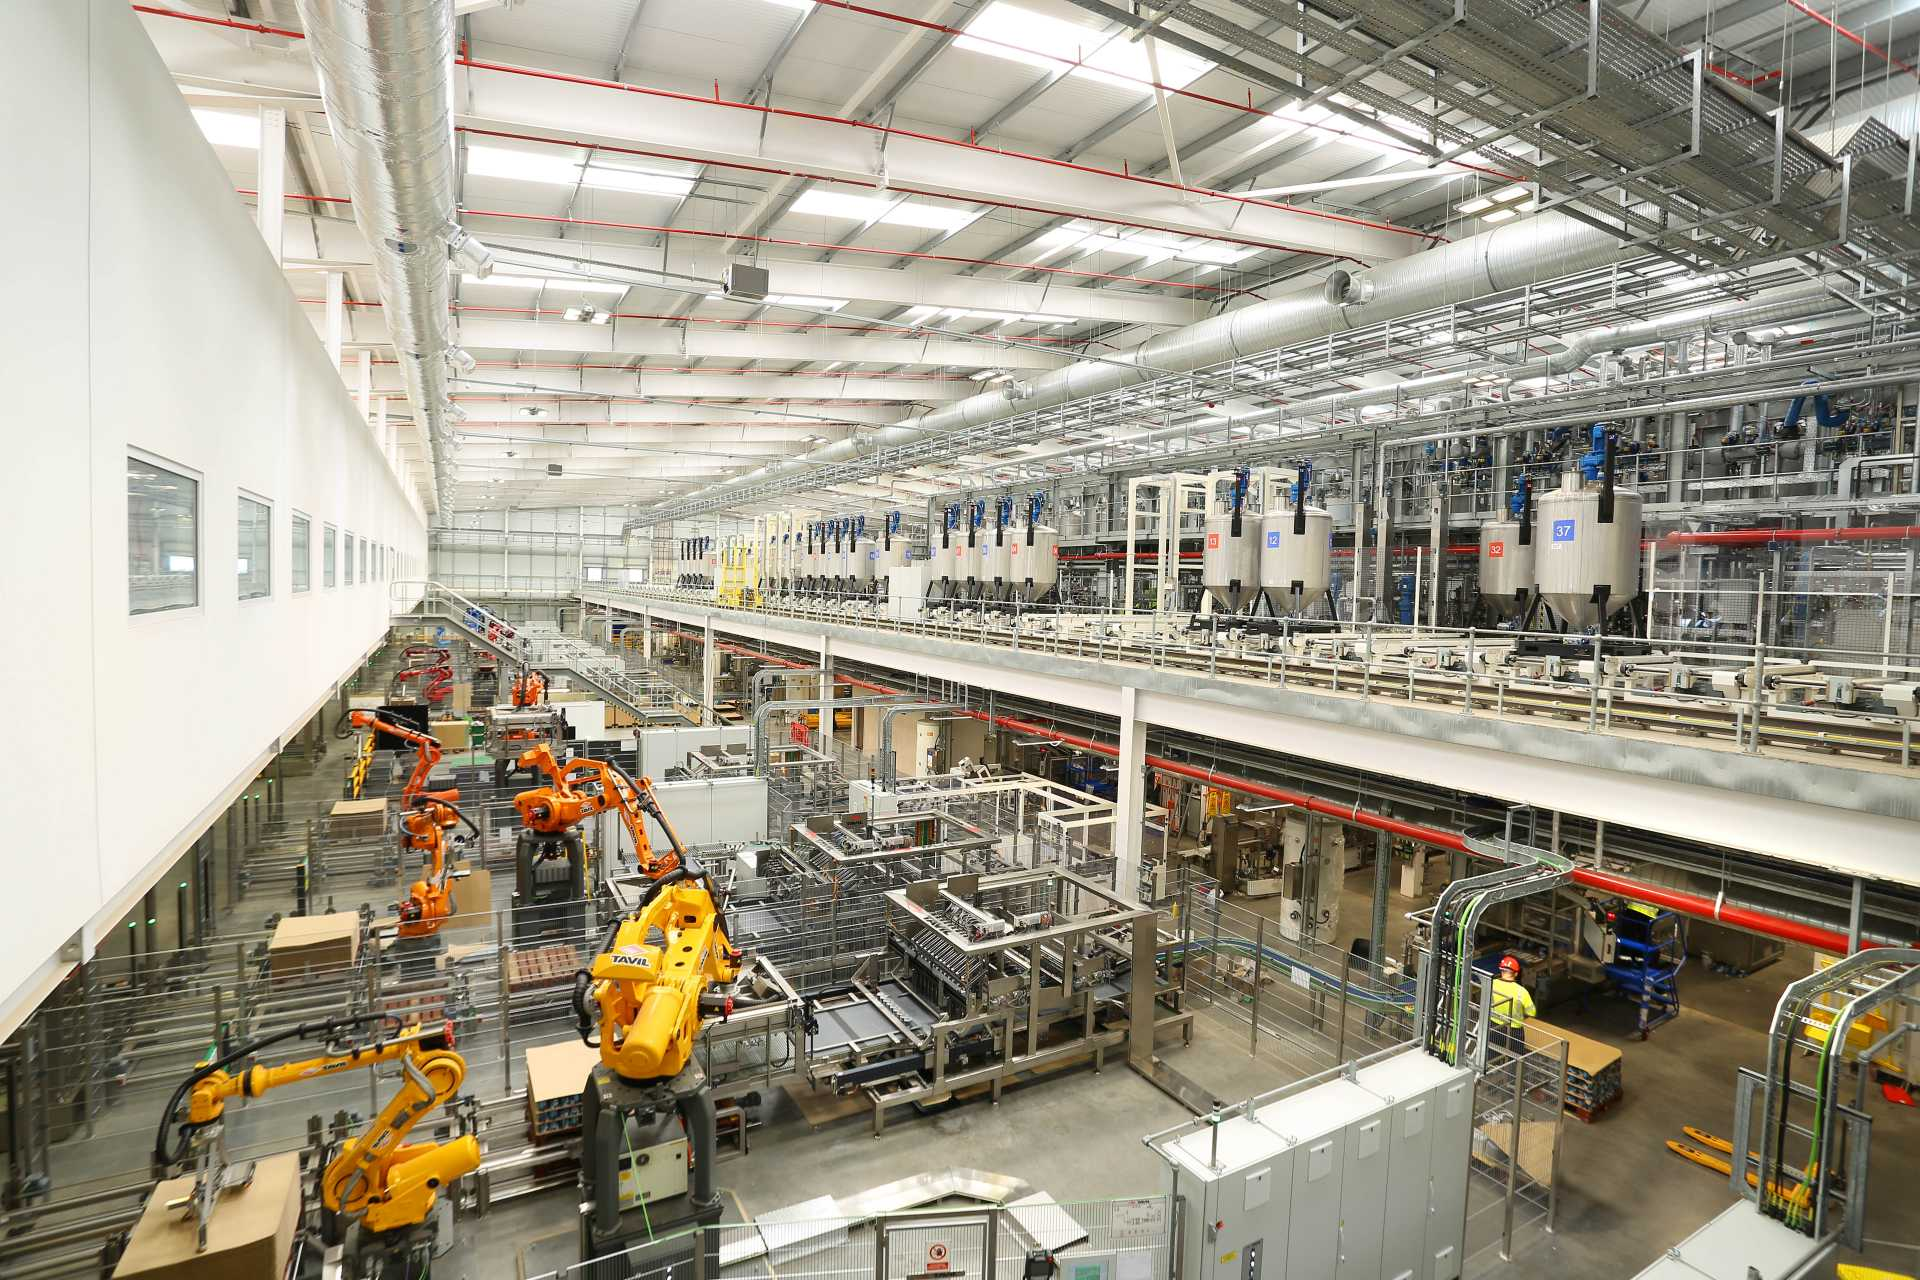 The Ashington factory will be capable of doubling current UK production levels to 200 million litres per year, the equivalent of 80 million 2.5 litre cans of Dulux – image courtesy of AkzoNobel.